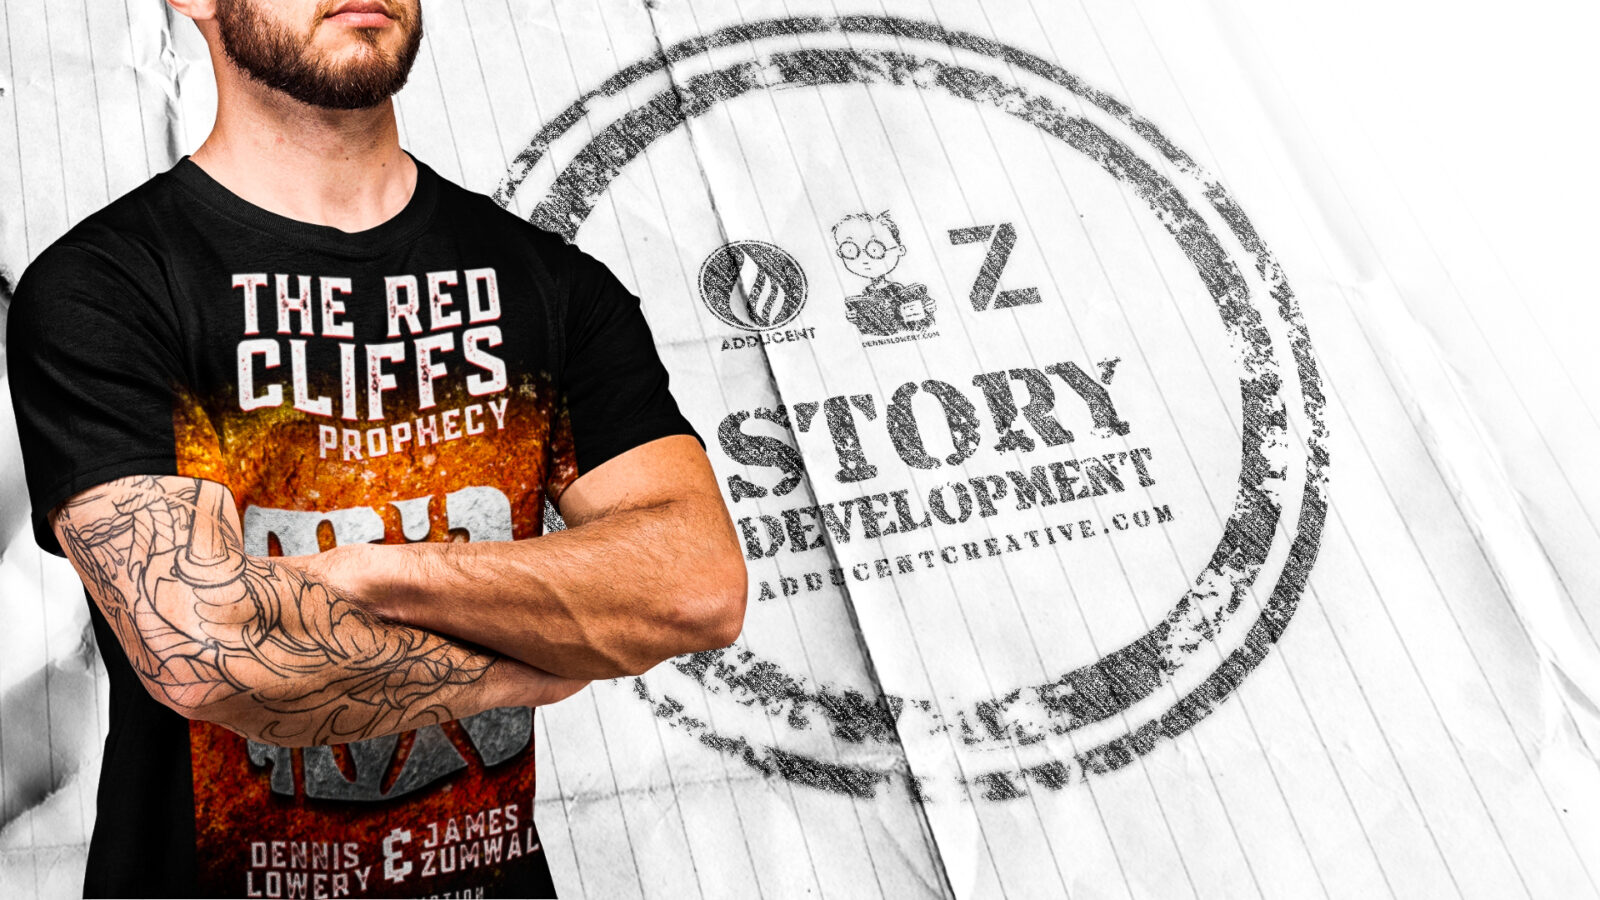 IN DEVELOPMENT - The Red Cliffs Prophecy - Adducent